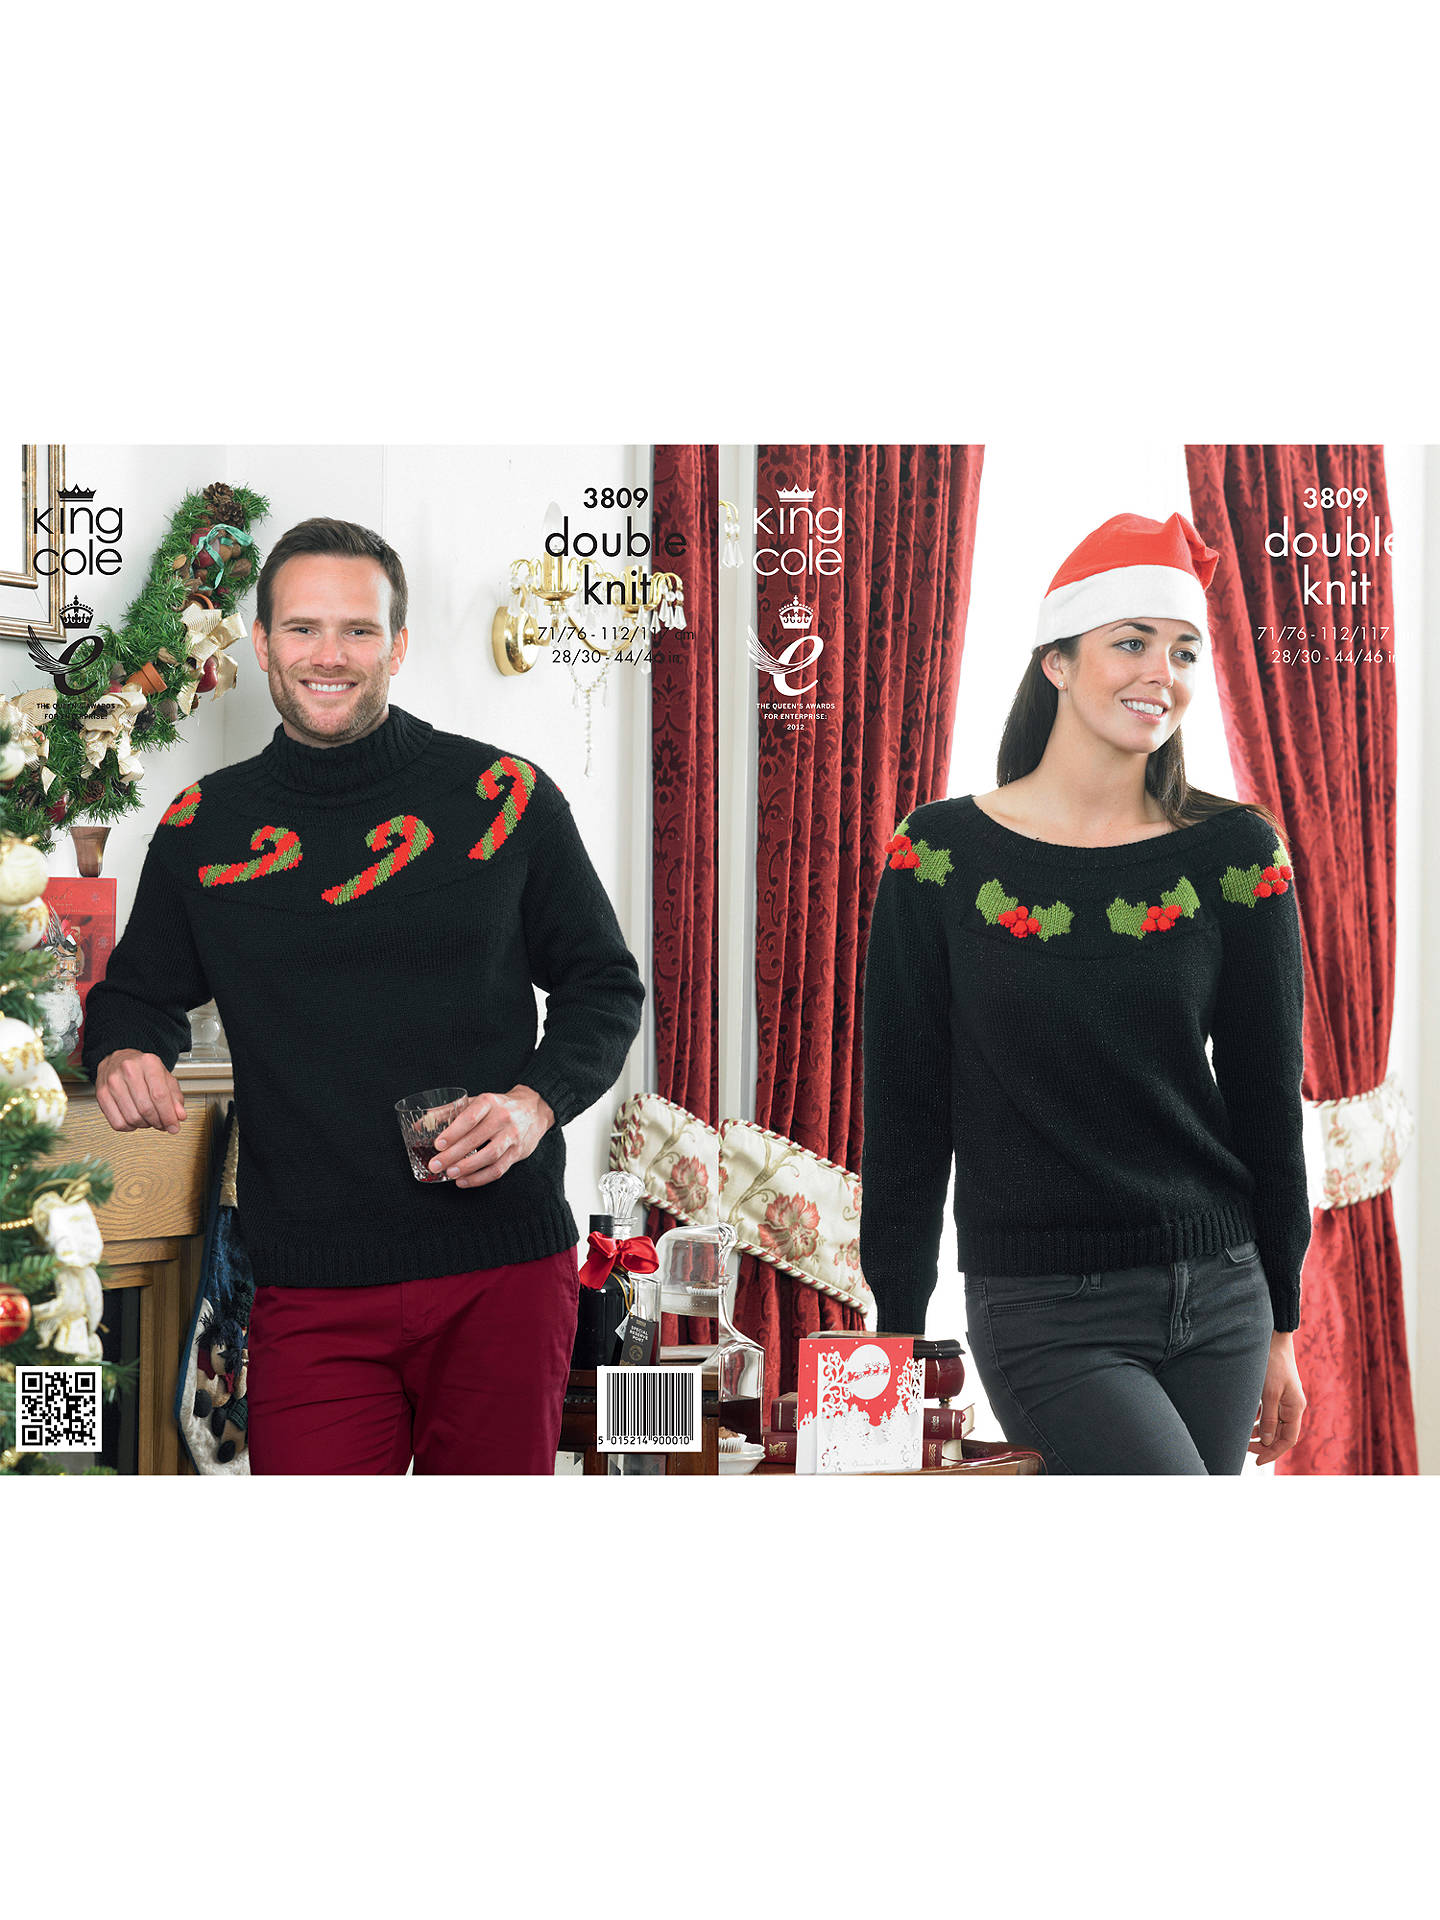 BuyKing Cole Big Value DK Men's and Women's Christmas Jumper Knitting Pattern, 3809 Online at johnlewis.com